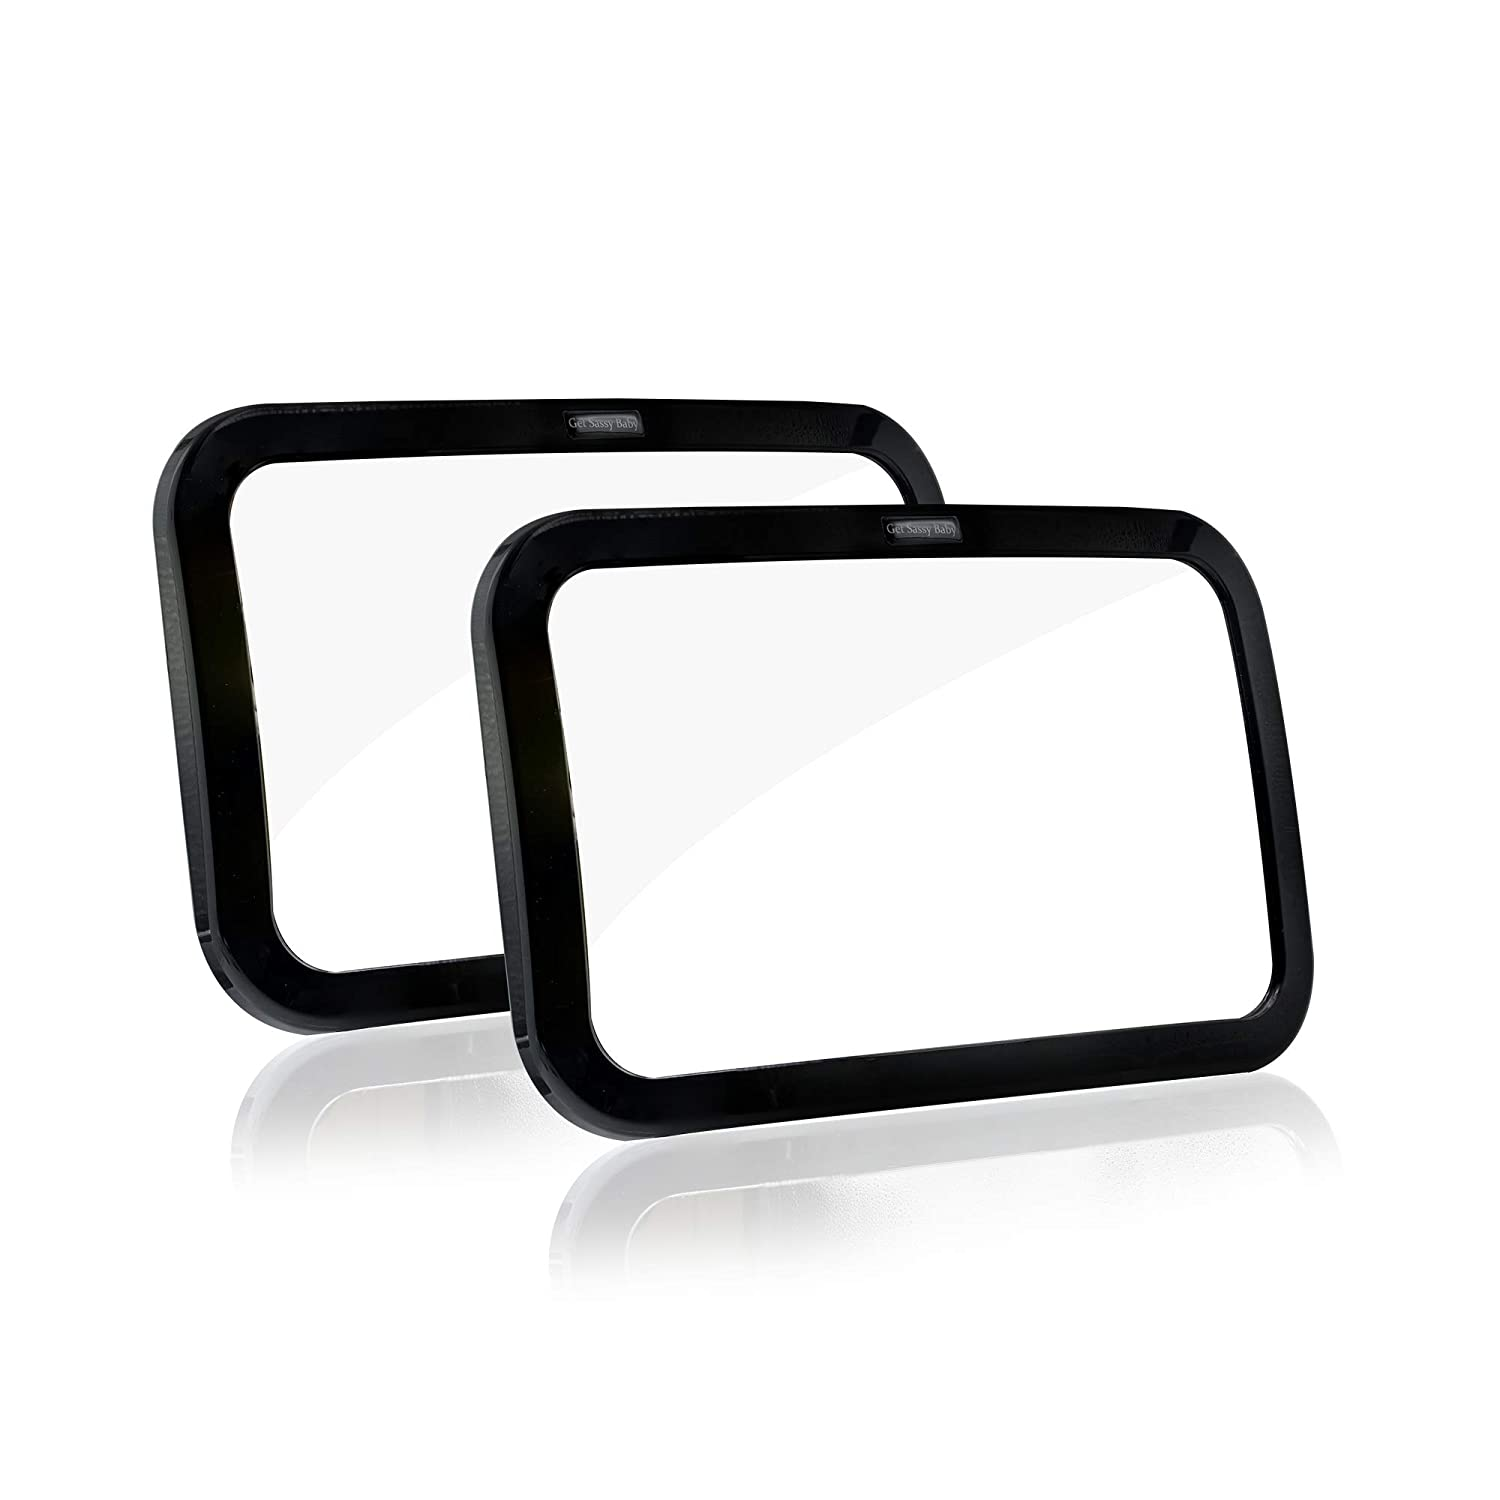 Safety Car Seat Mirror for Rear Facing Infant Car Seat Shatterproof Acrylic Essential Car Seat Accessory Baby Car Mirror 2 Pack 360 Degree Adjustability with Wide Clear View of Infants Every Move